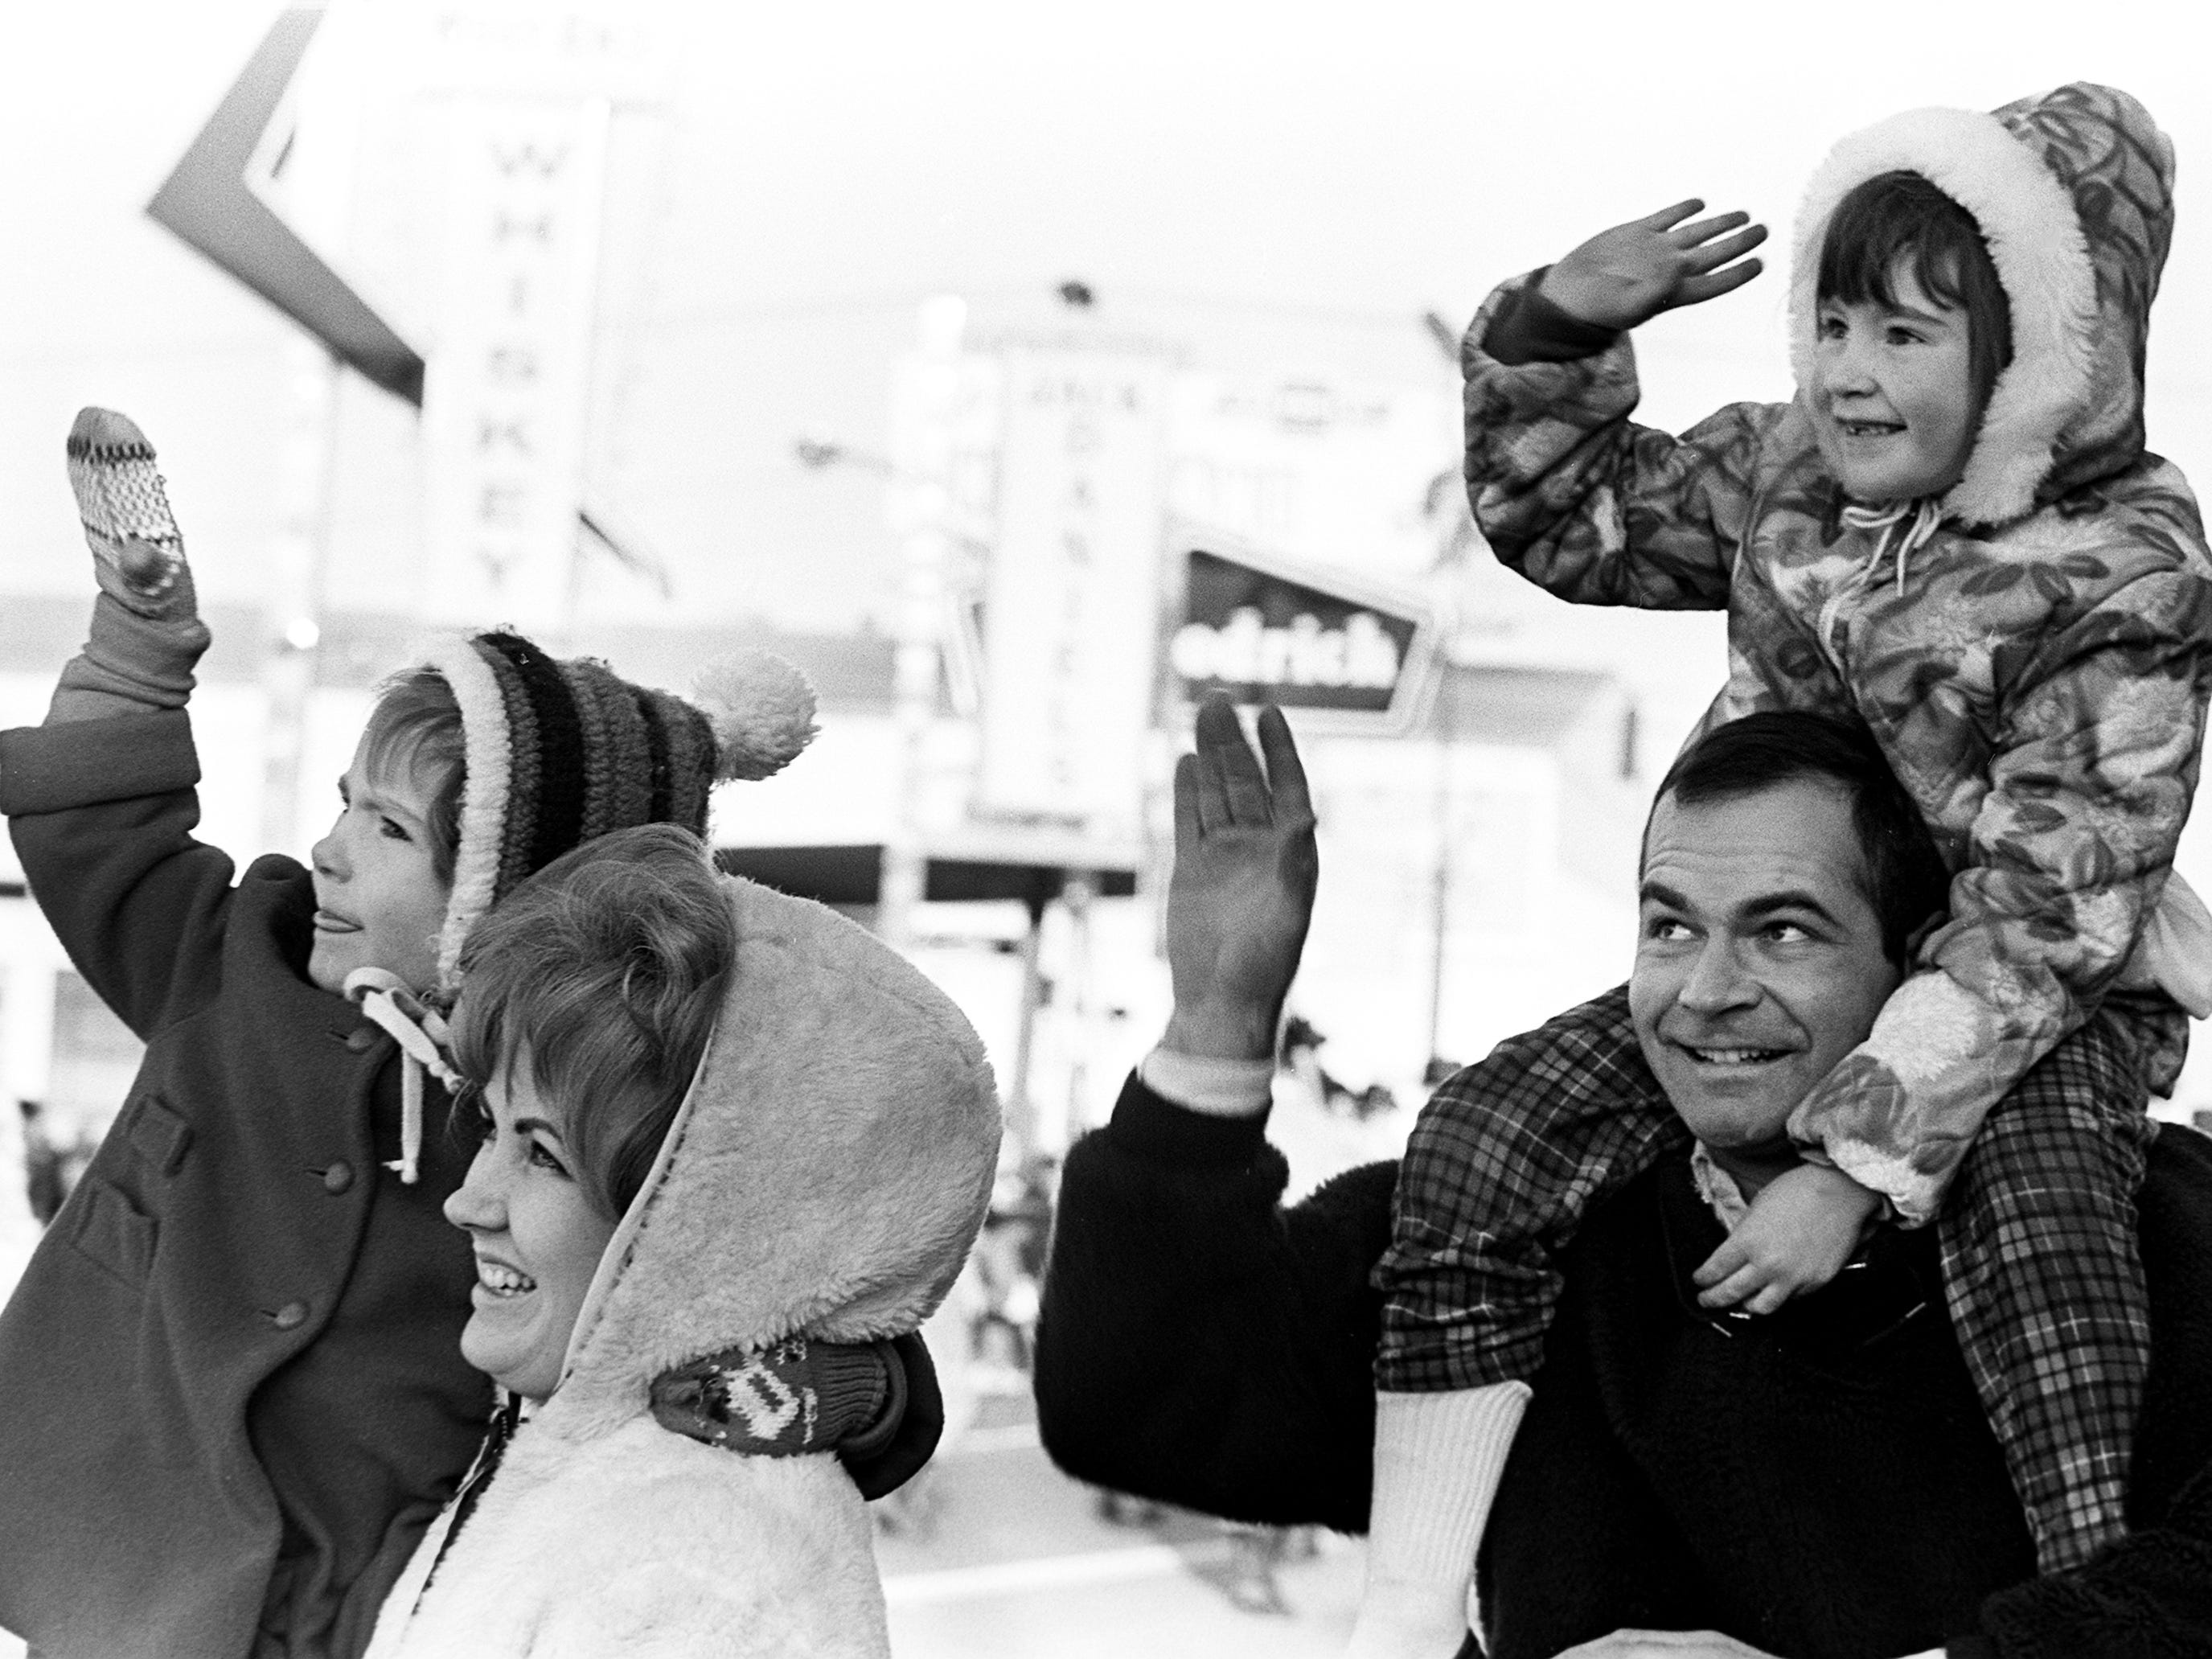 Dana Hight, 4, left, and Deannie Hight, 6, right, got a lift to see and wave to Santa from their parents, Mr. and Mrs. D.W. Hight of Matthew Ave. during the 16th annual Nashville Christmas parade Dec. 8, 1968.